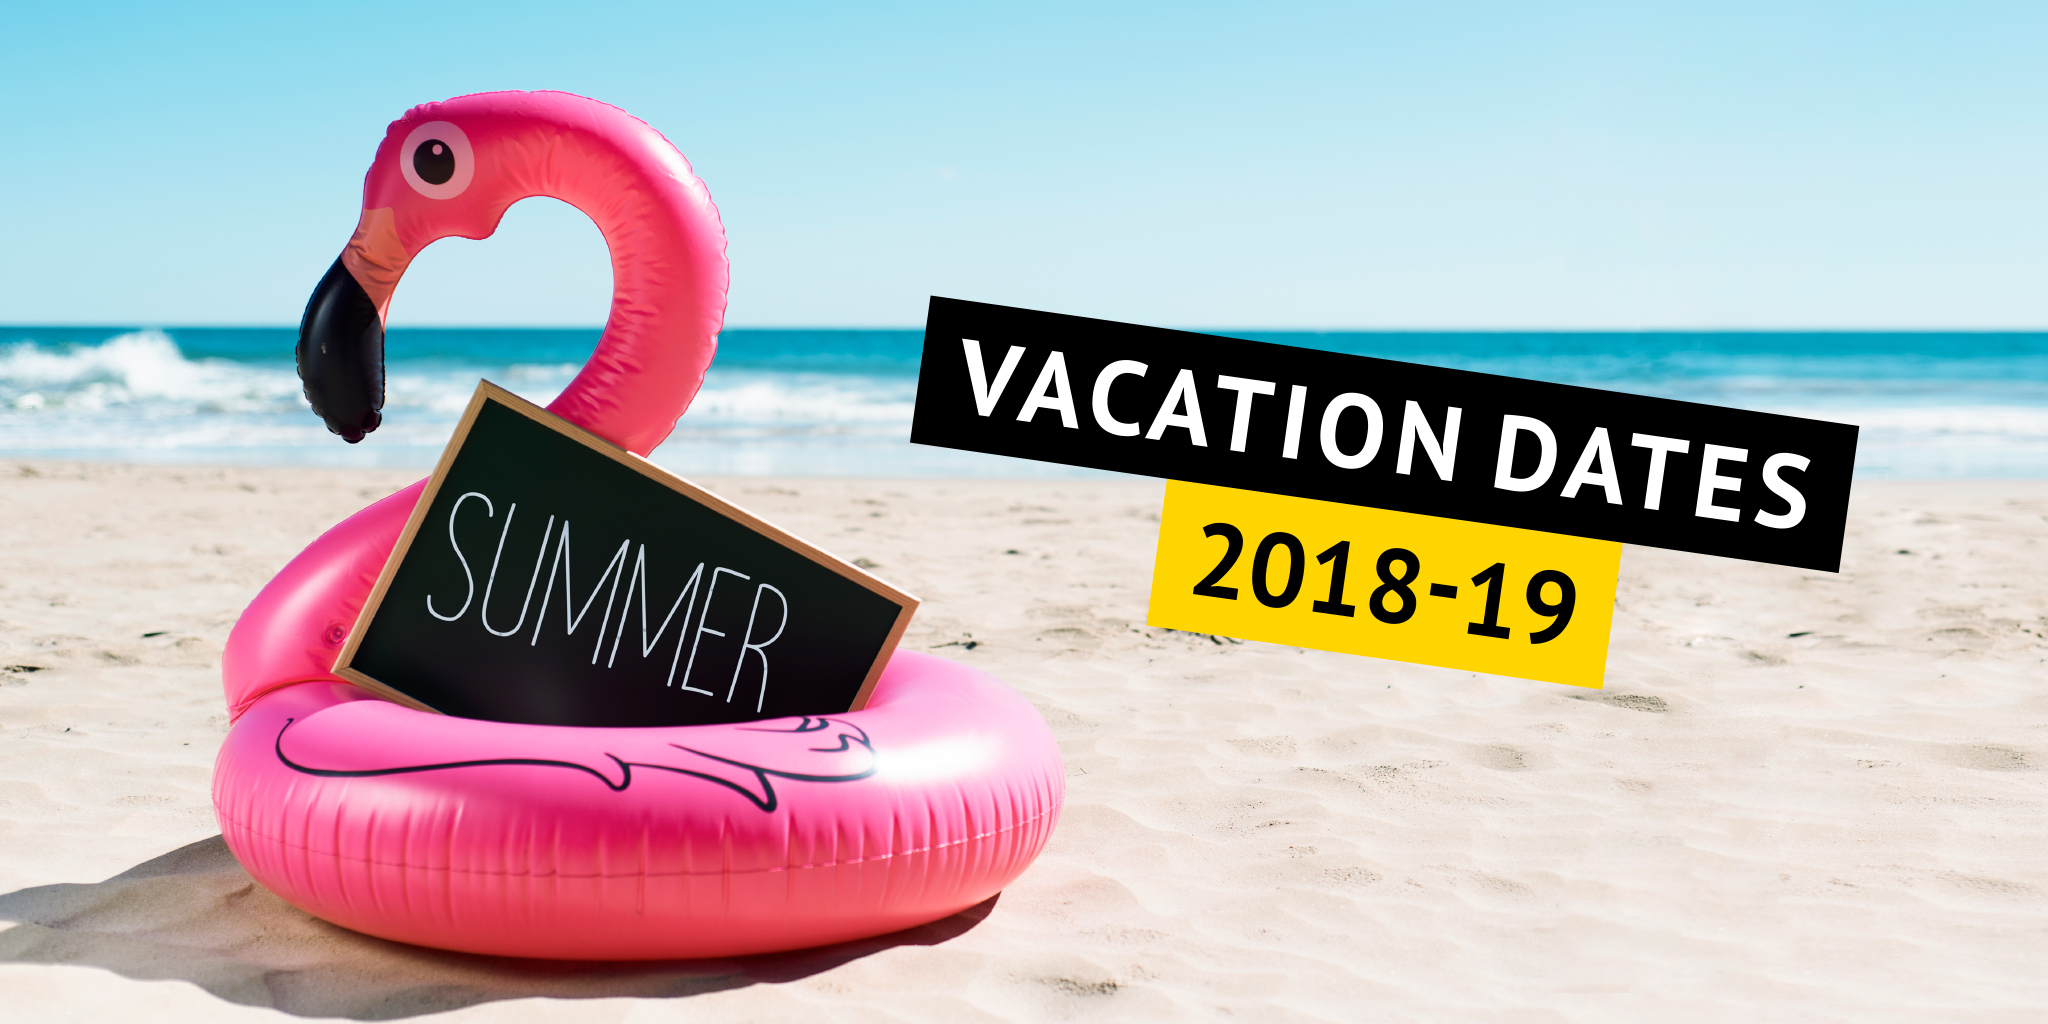 Photo of inflatable flamingo showing sign reading 'Vacations Dates 2018 - 2019'